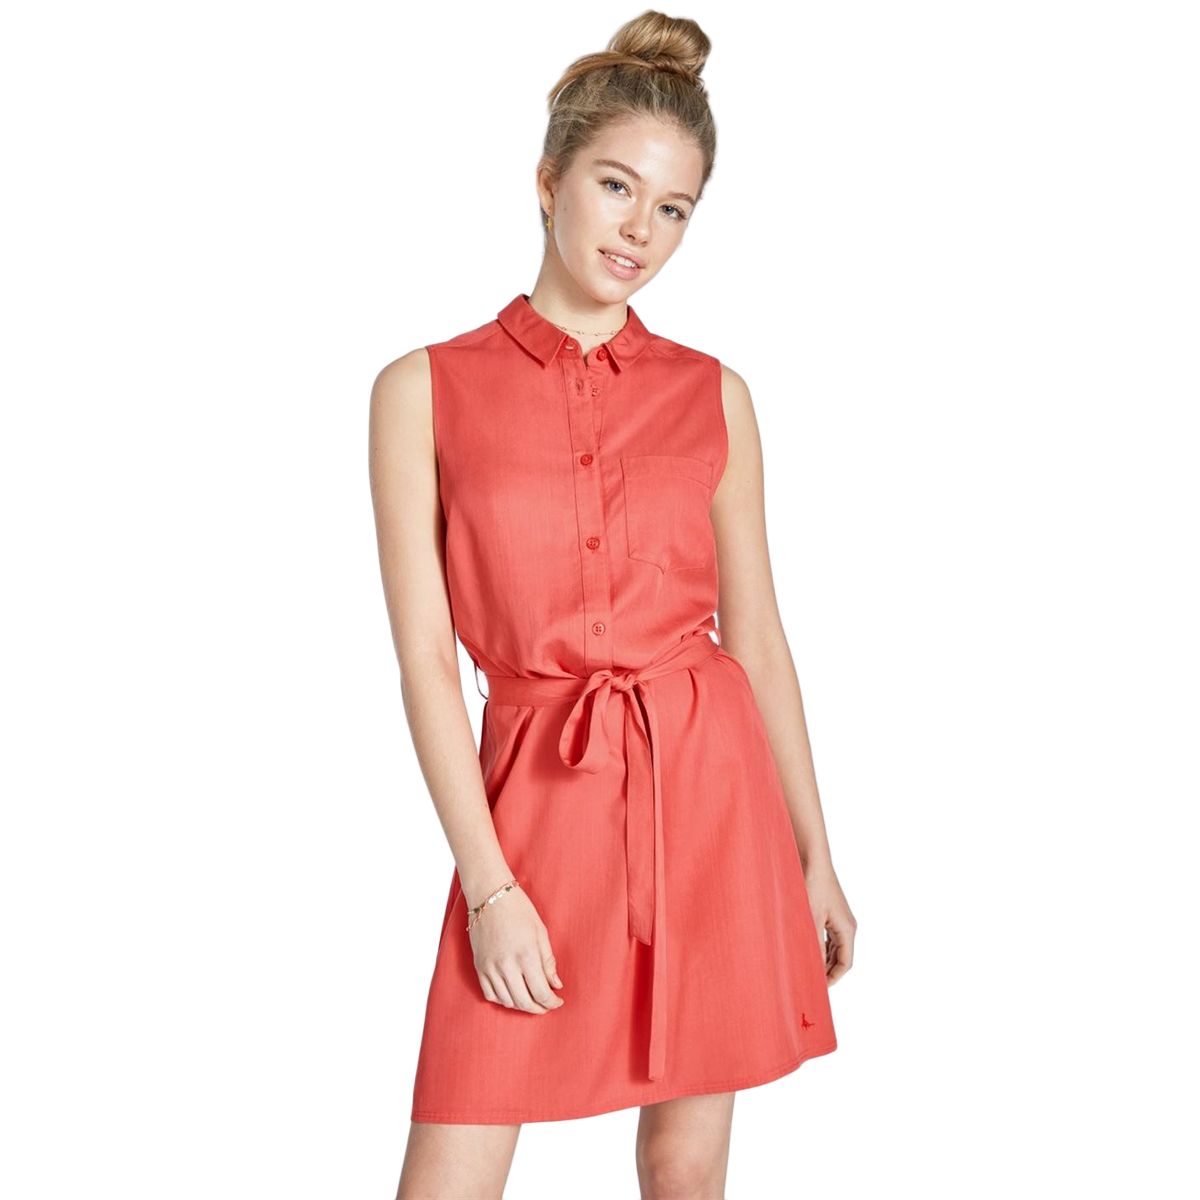 Jack Wills Women's Ruckhall Sleeveless Shirt Dress - Red, 2